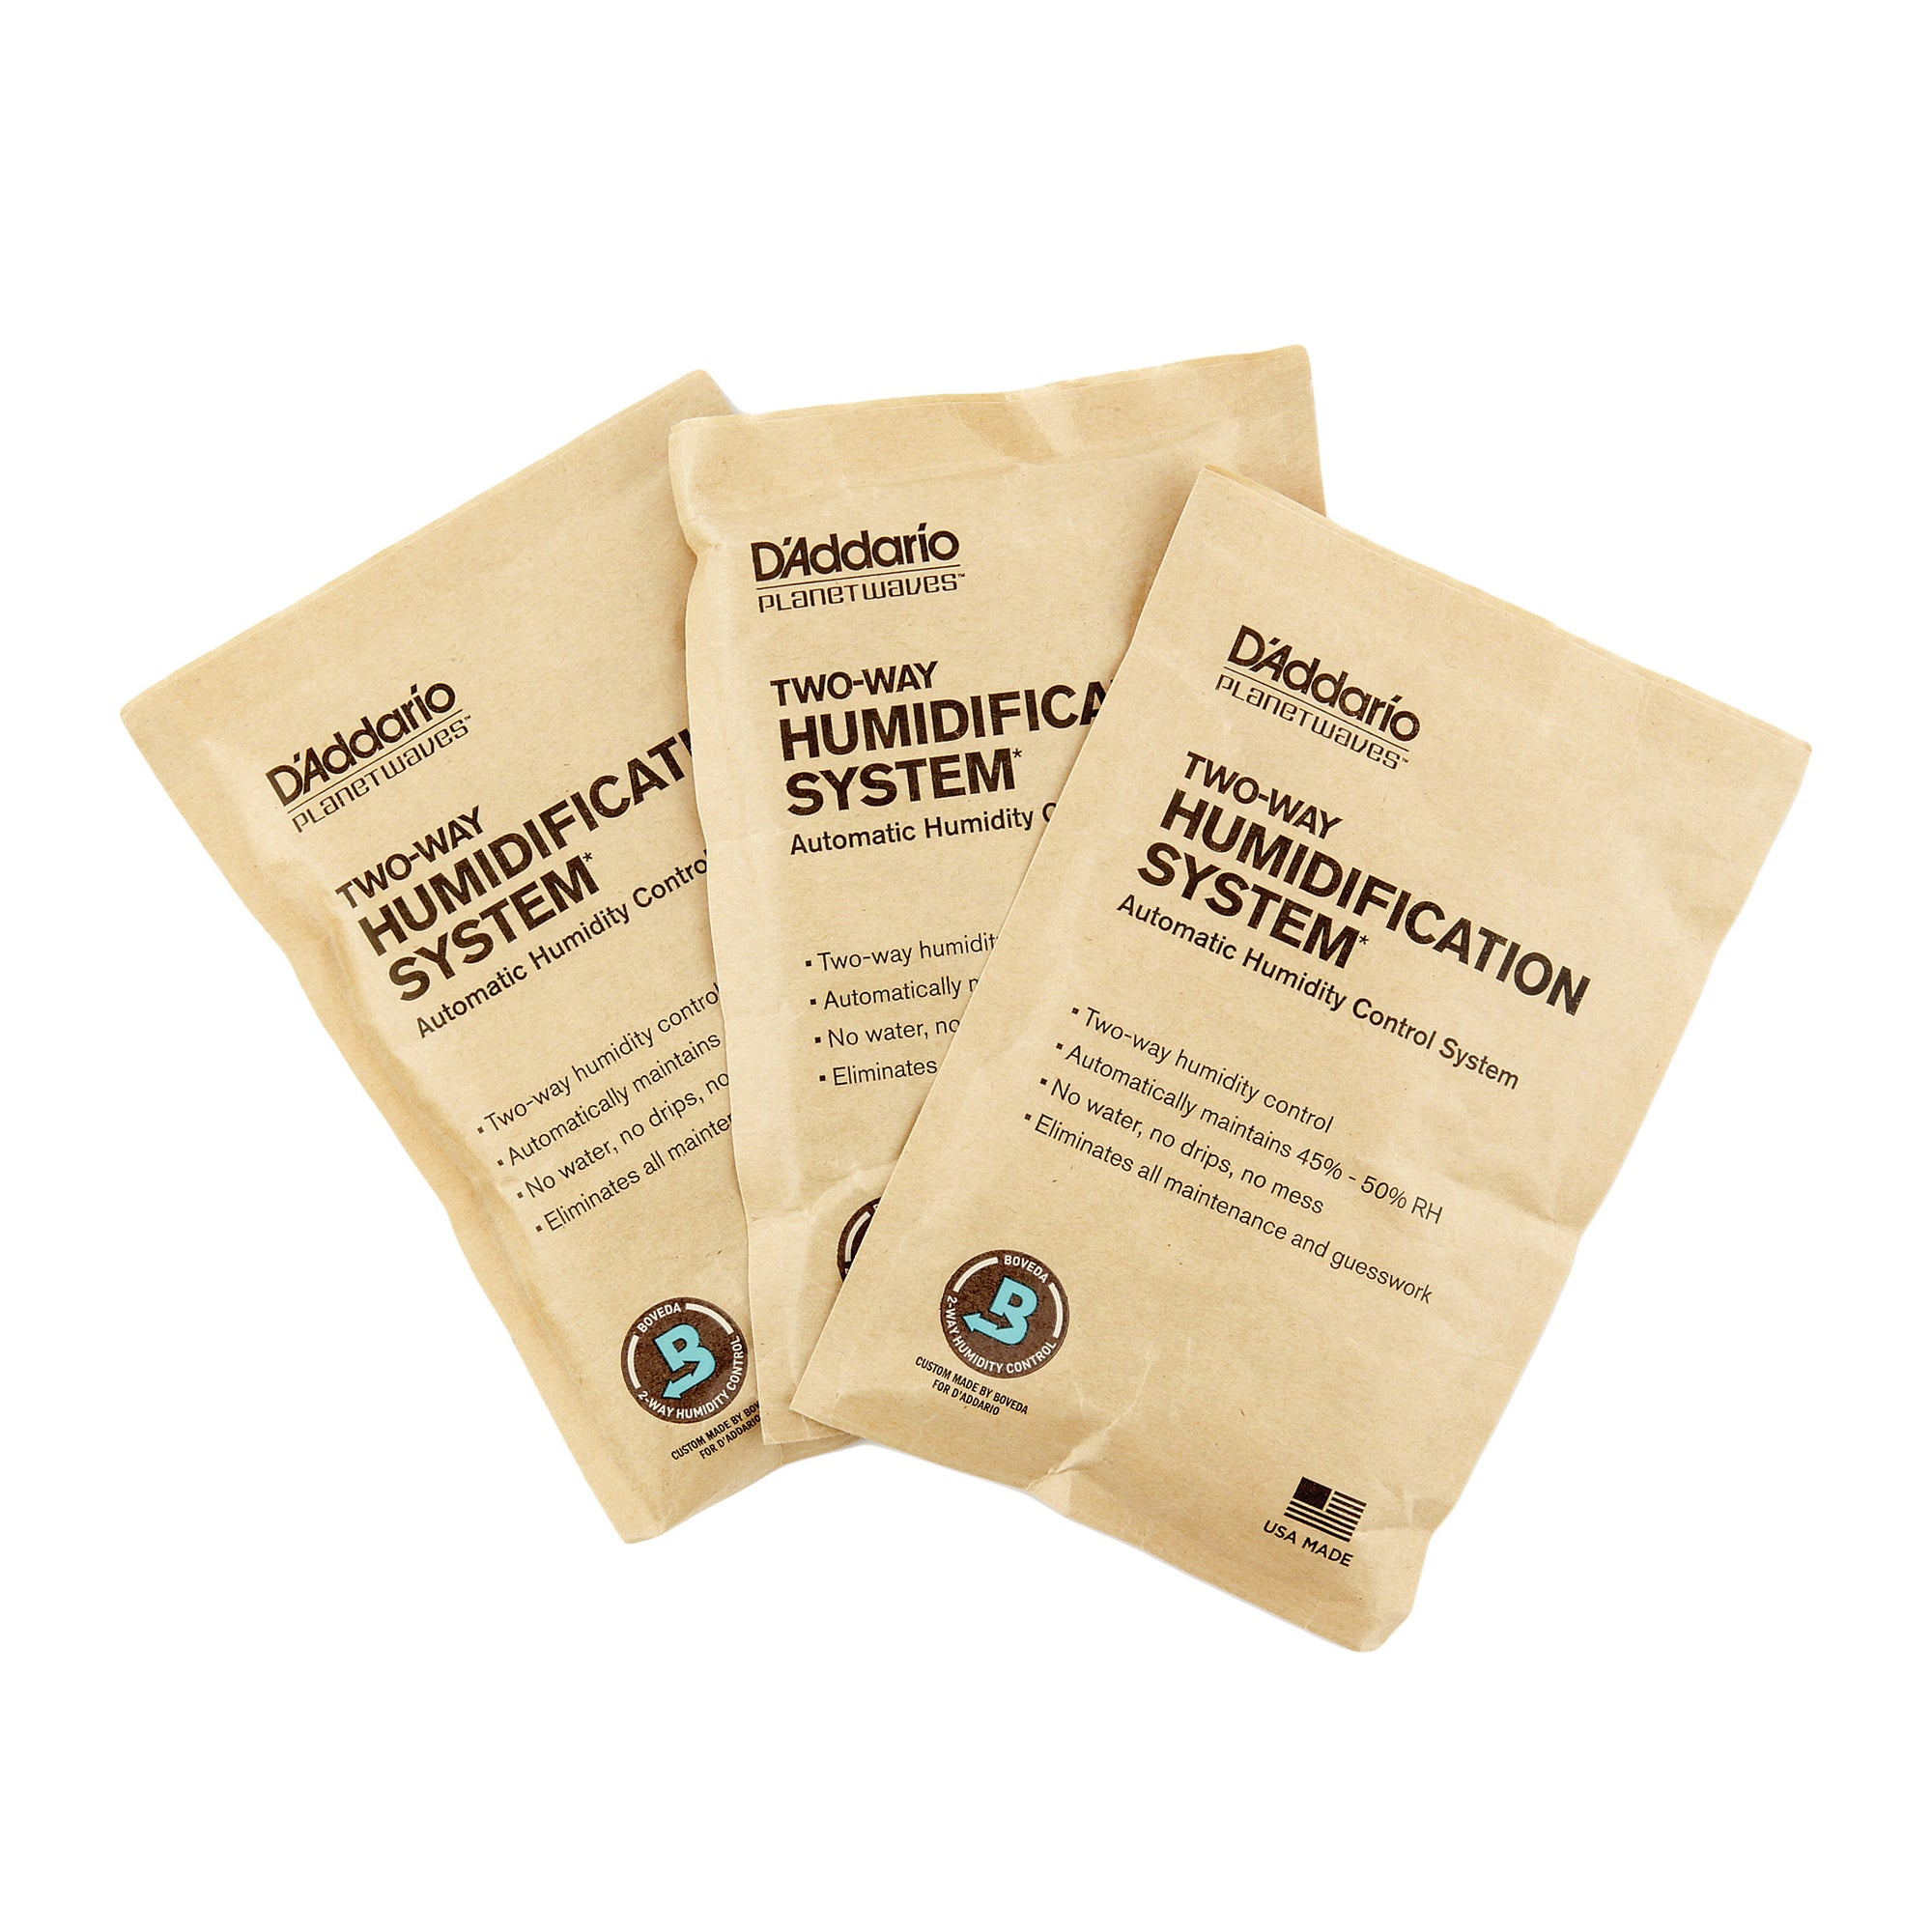 D'Addario Two-Way Humidification System Replacement Packets